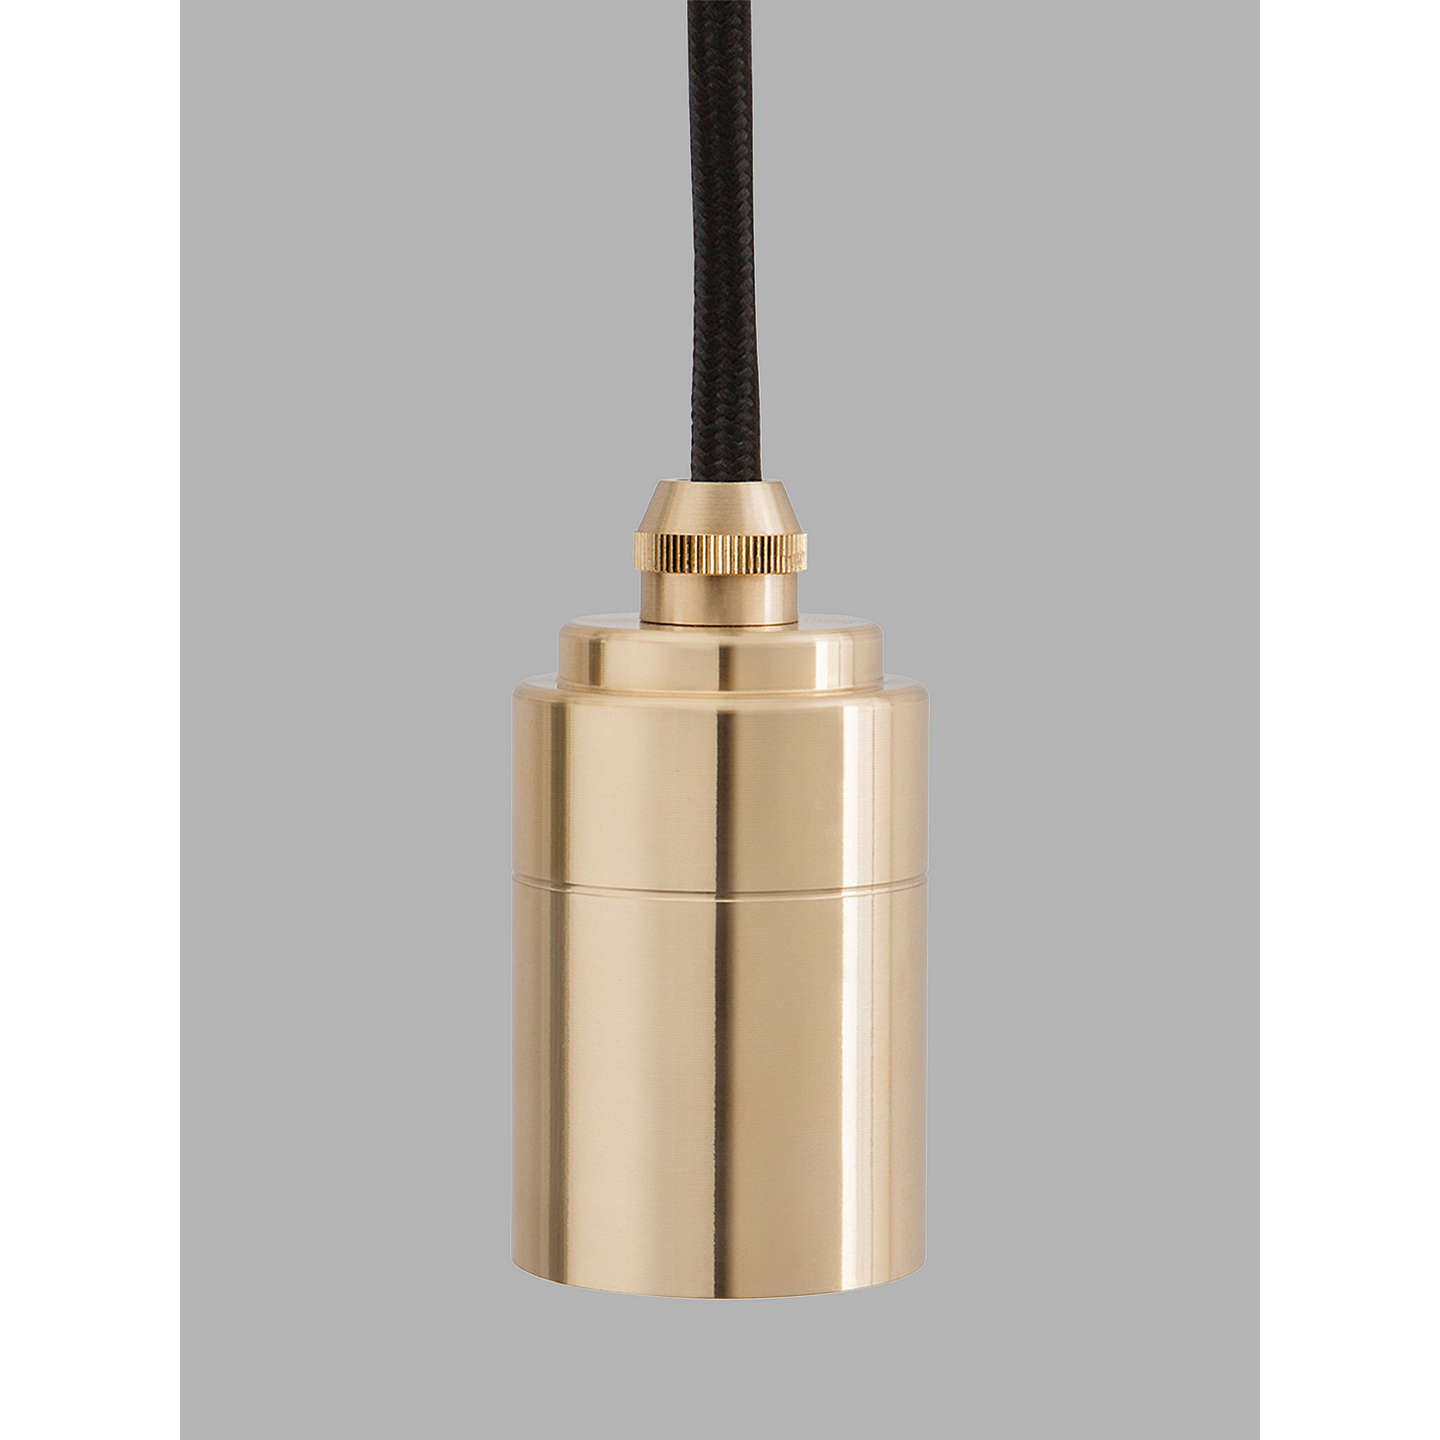 Tala led pendant cord ii brass at john lewis buytala led pendant cord ii brass online at johnlewis aloadofball Image collections